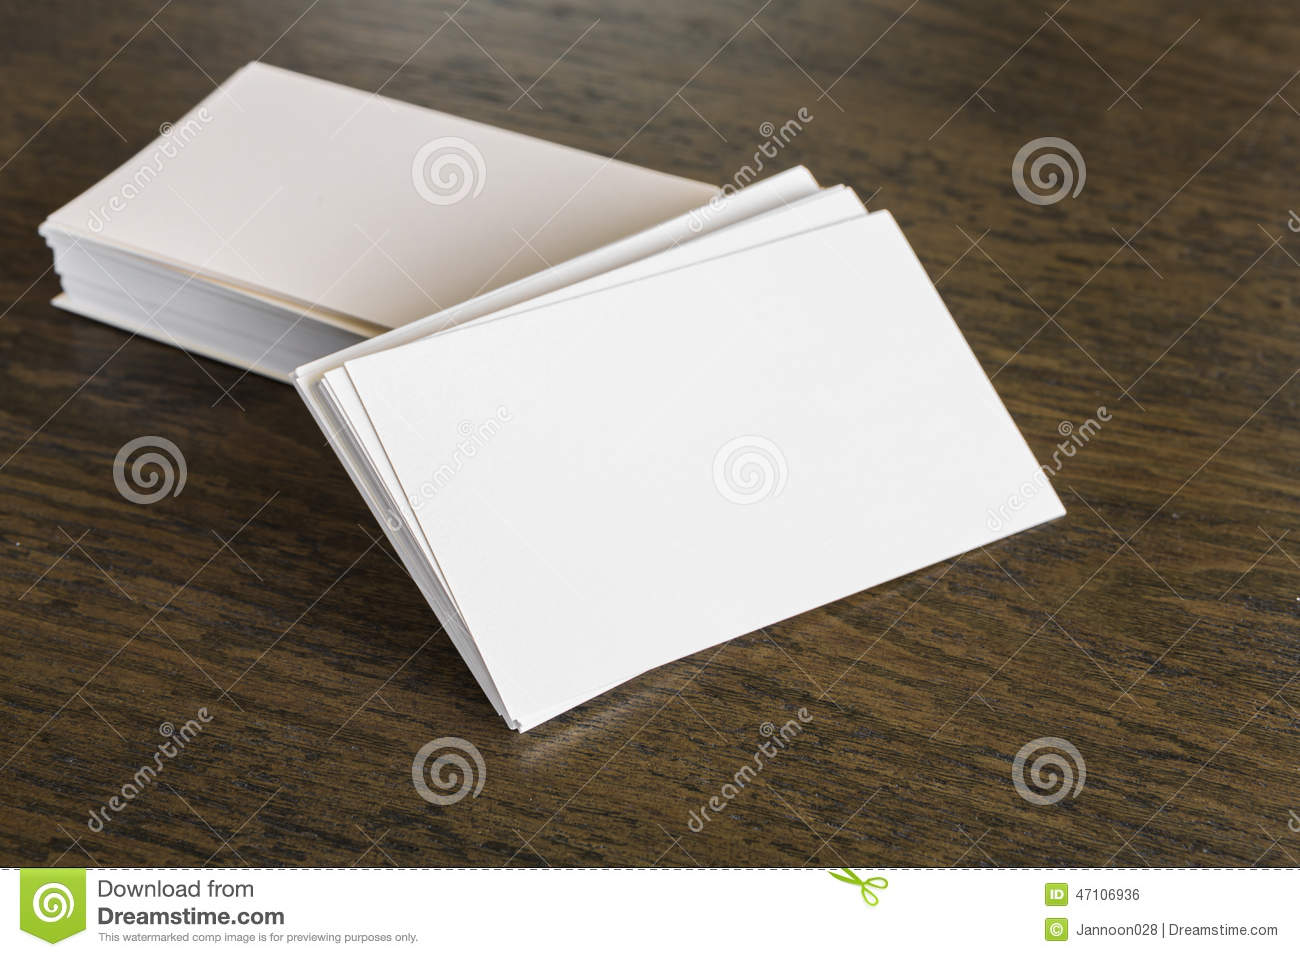 Business Cards On Wood Table Royalty Free Stock Image